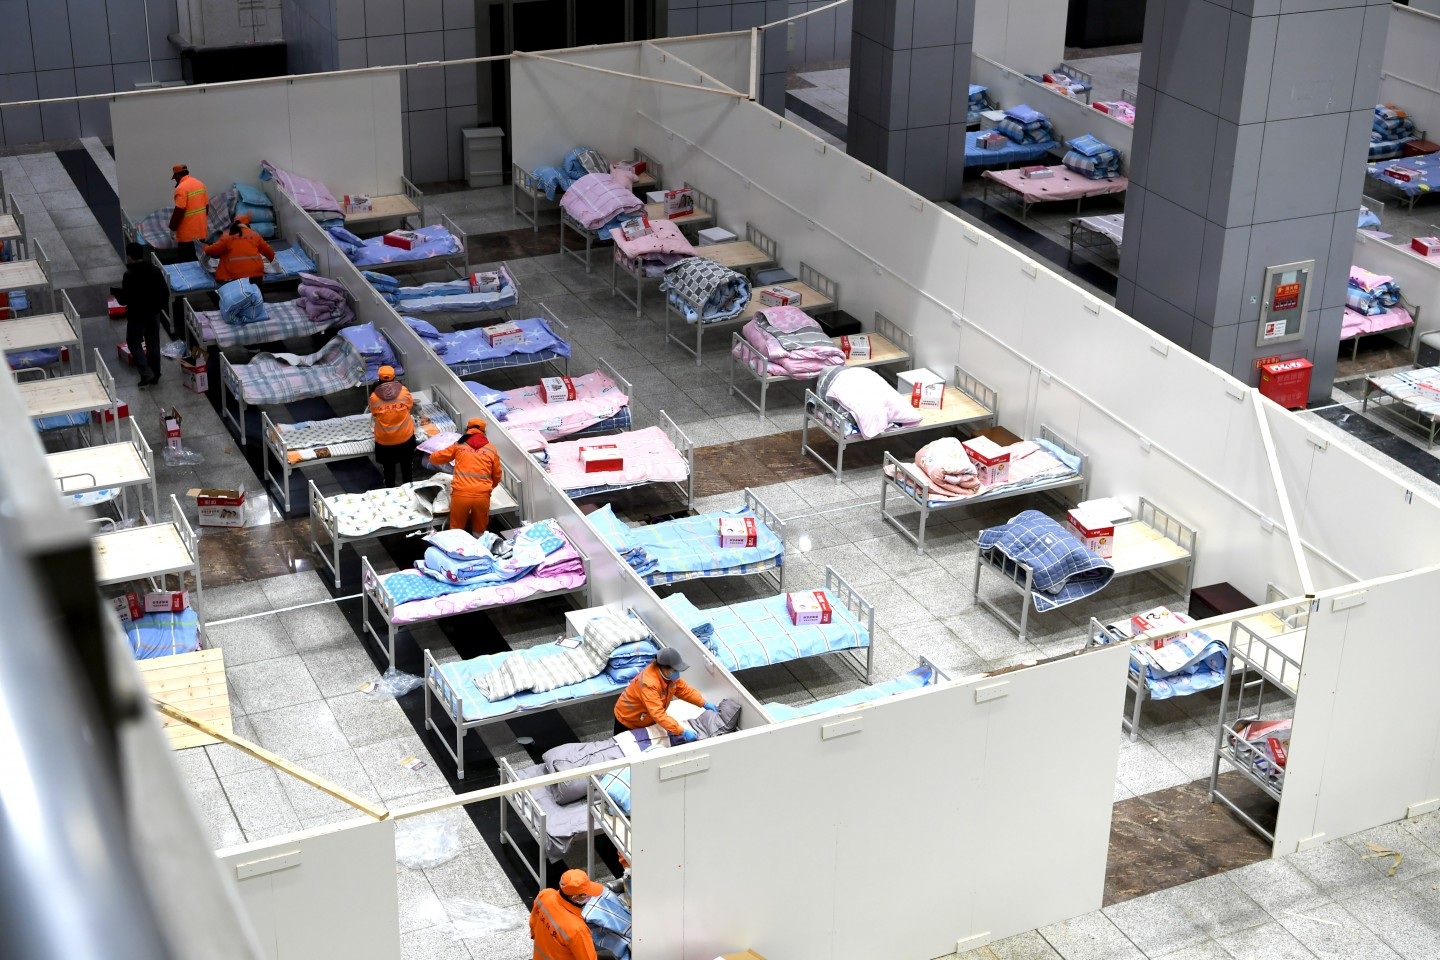 The Wuhan International Conference & Exhibition Center has been transformed into a makeshift hospital. (CNS)